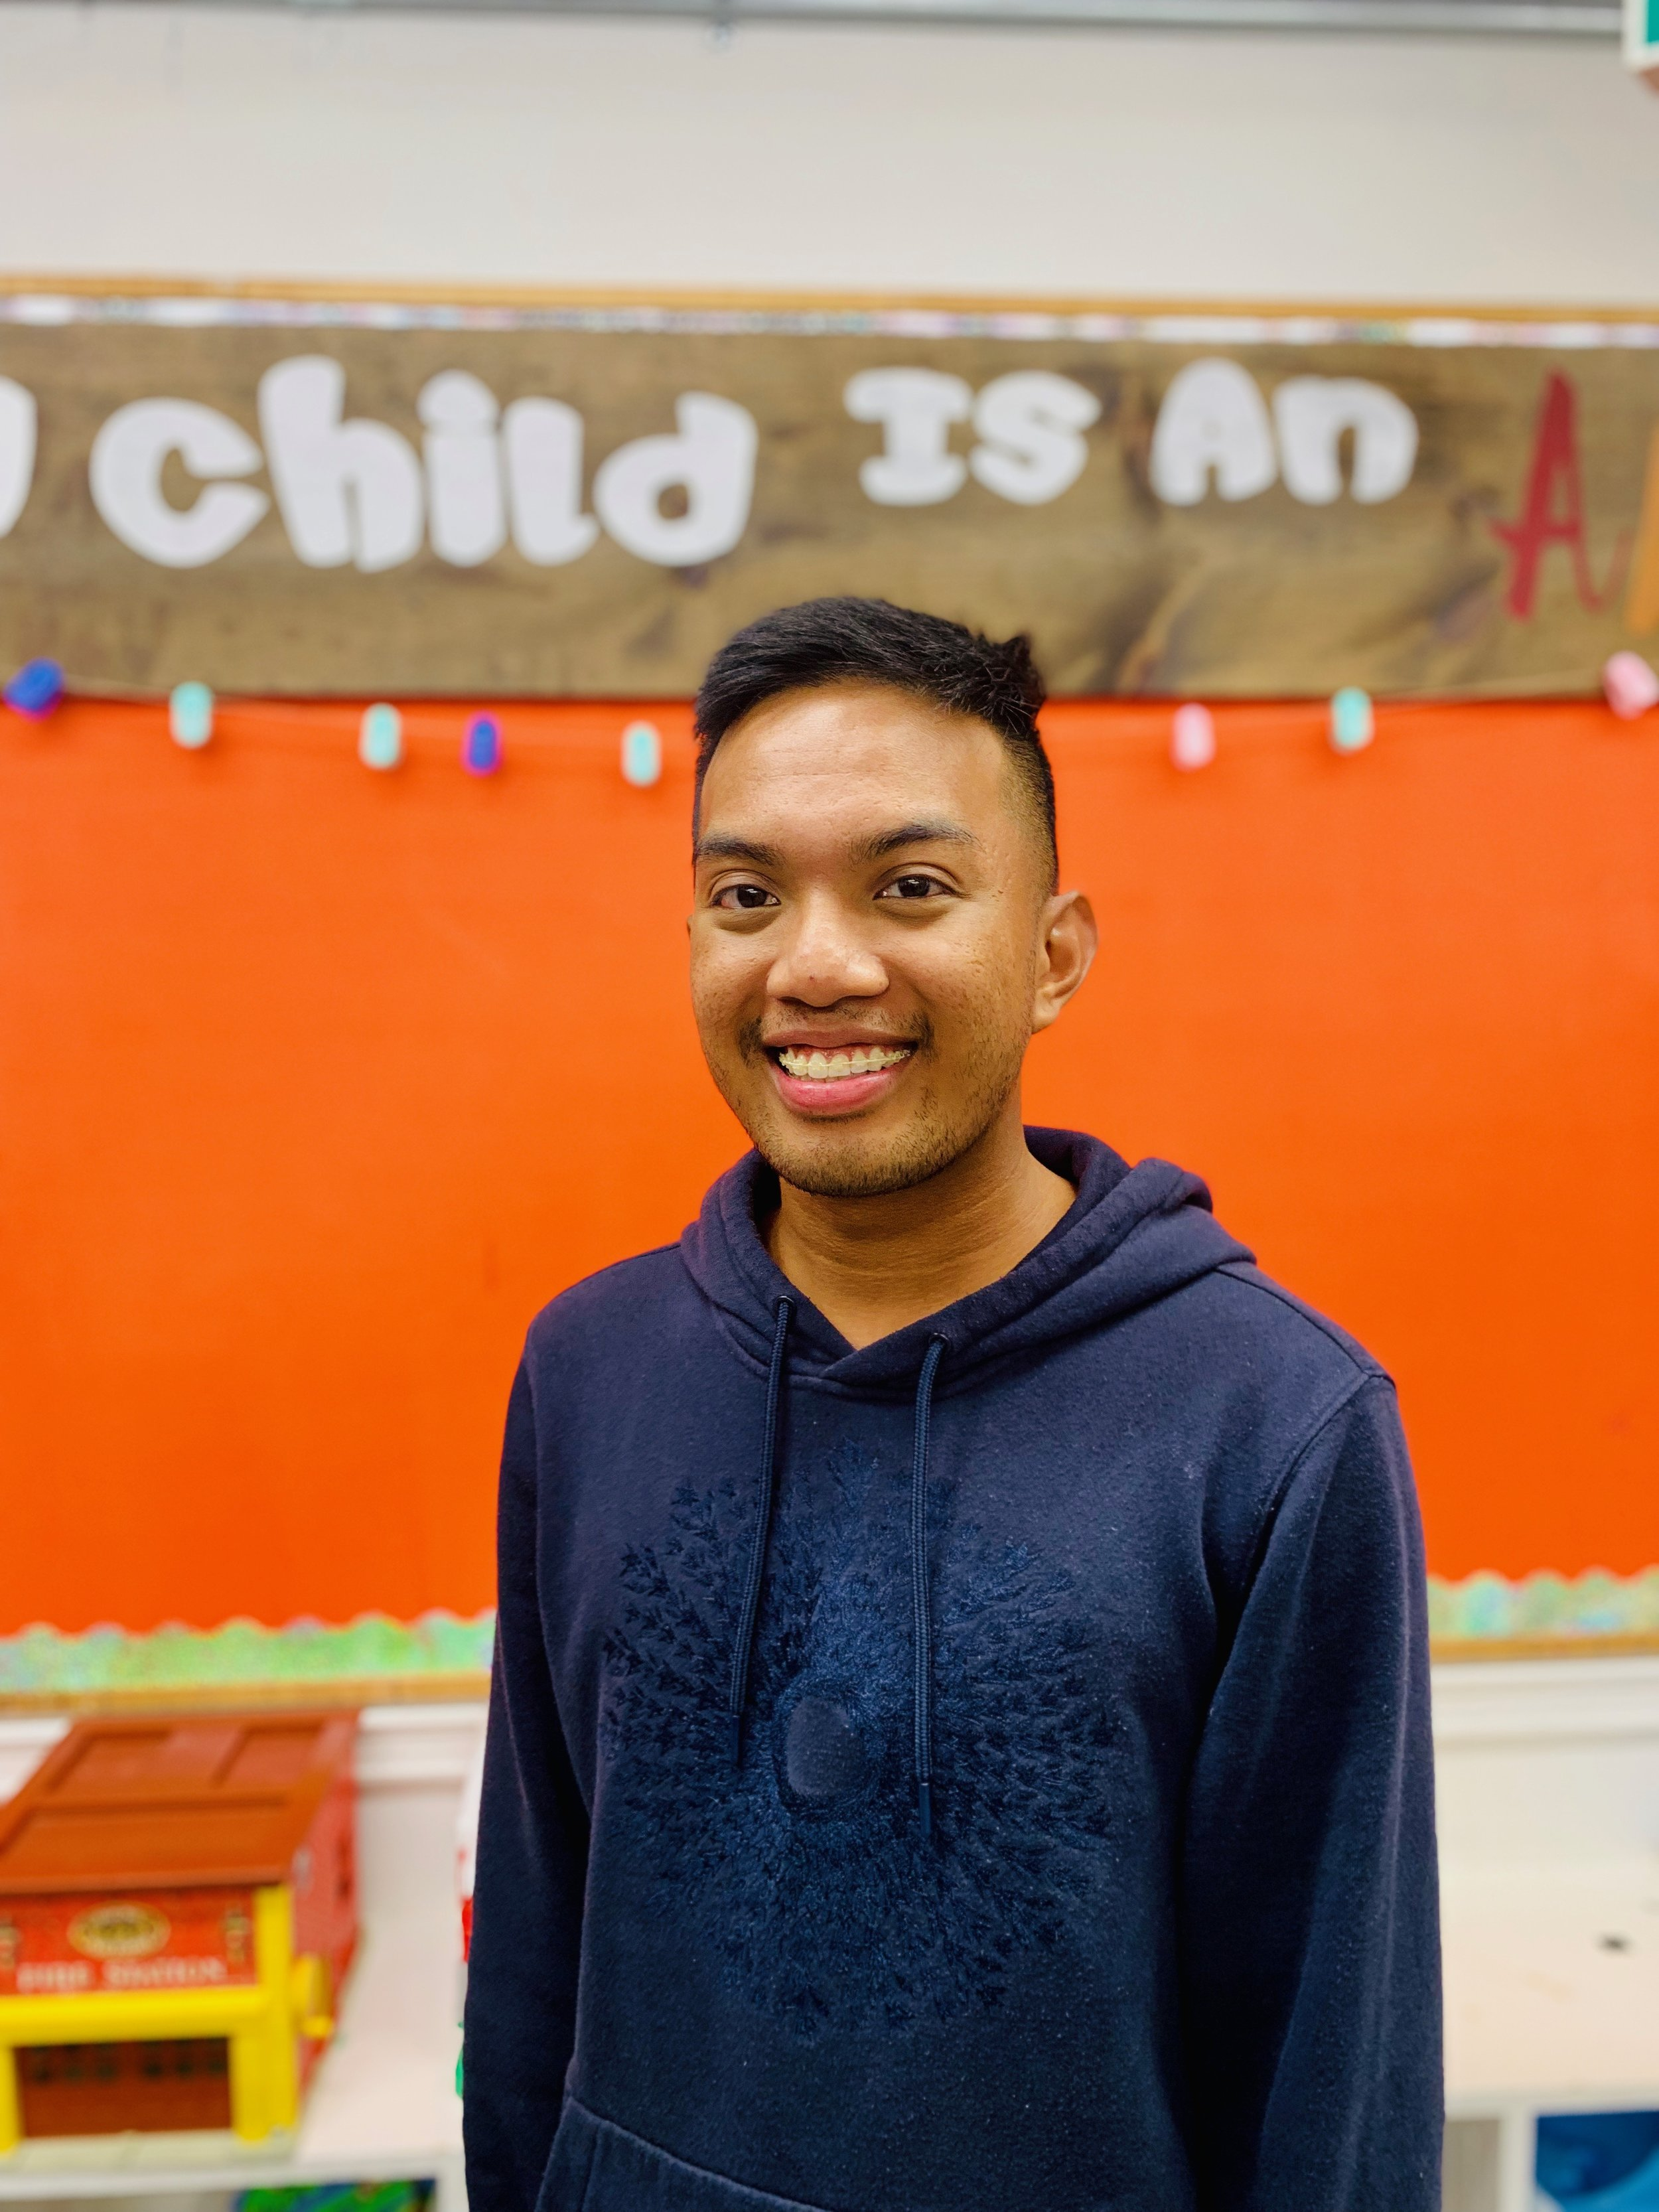 Rey is occasional staff as well! He is fluent in Tagalog and English and has been an Early Childhood Assistant since 2012. Rey has recently graduated from the Early Childhood Education program and will be attending Ryerson University in Fall 2019 to complete his bachelor program in Early Childhood Studies.